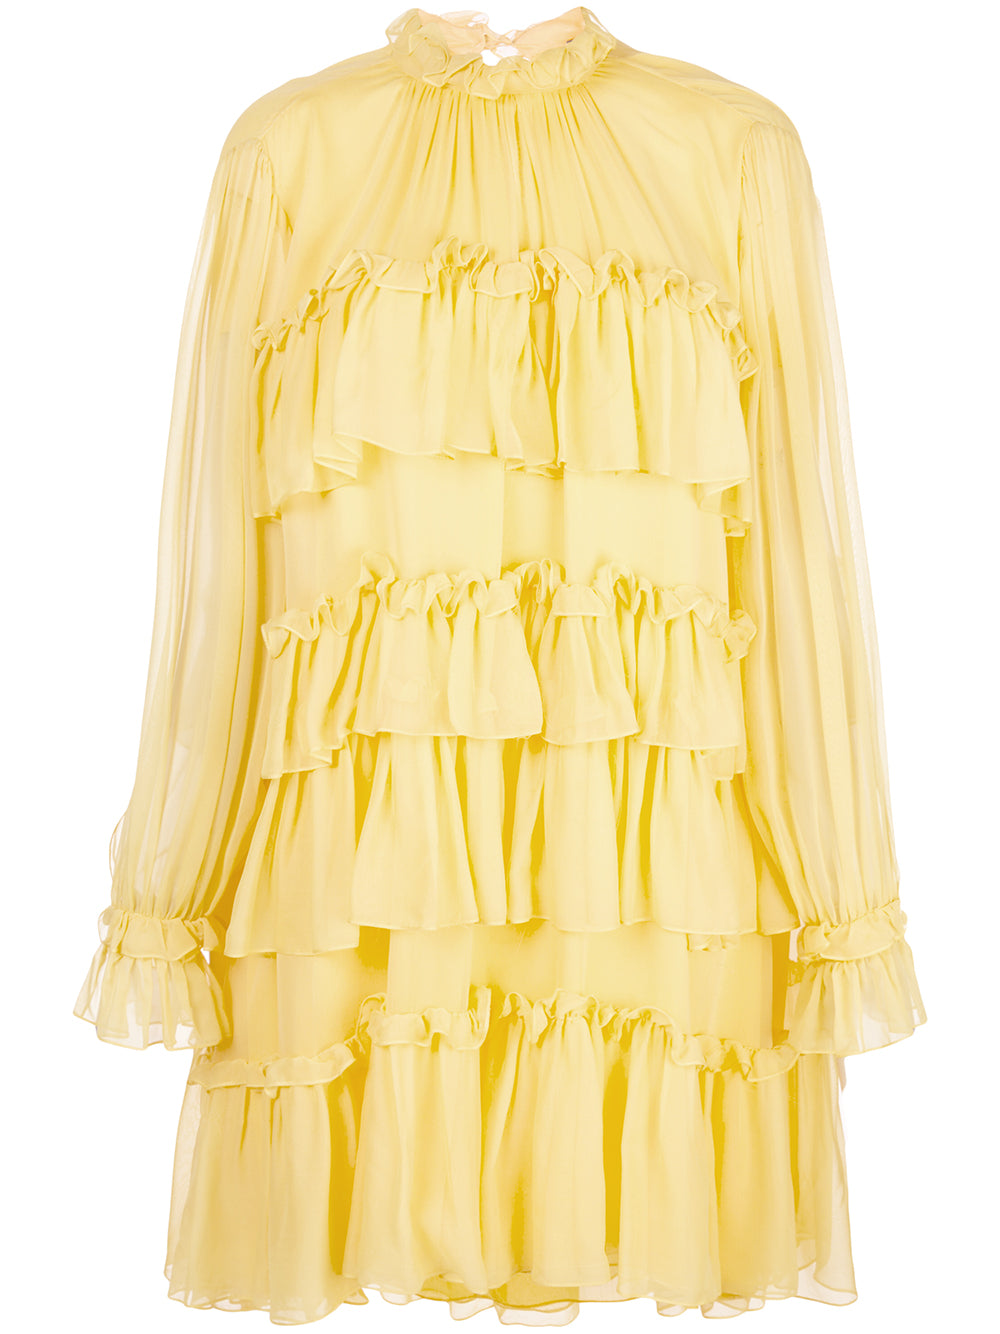 SILK CHIFFON TIERED RUFFLE DRESS